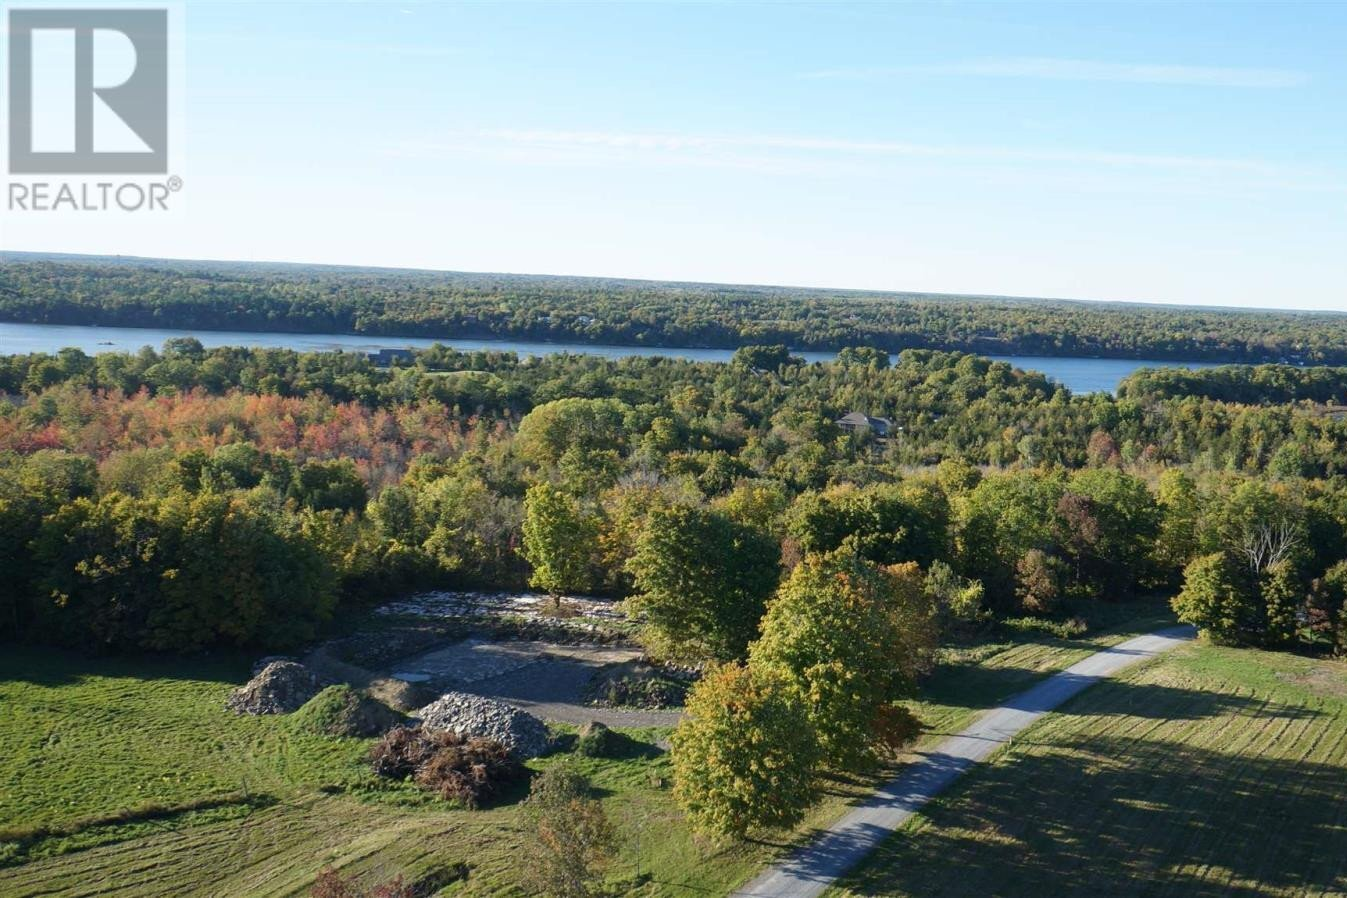 Home for sale at 6 Balsam Ln South Frontenac Ontario - MLS: K20003884a